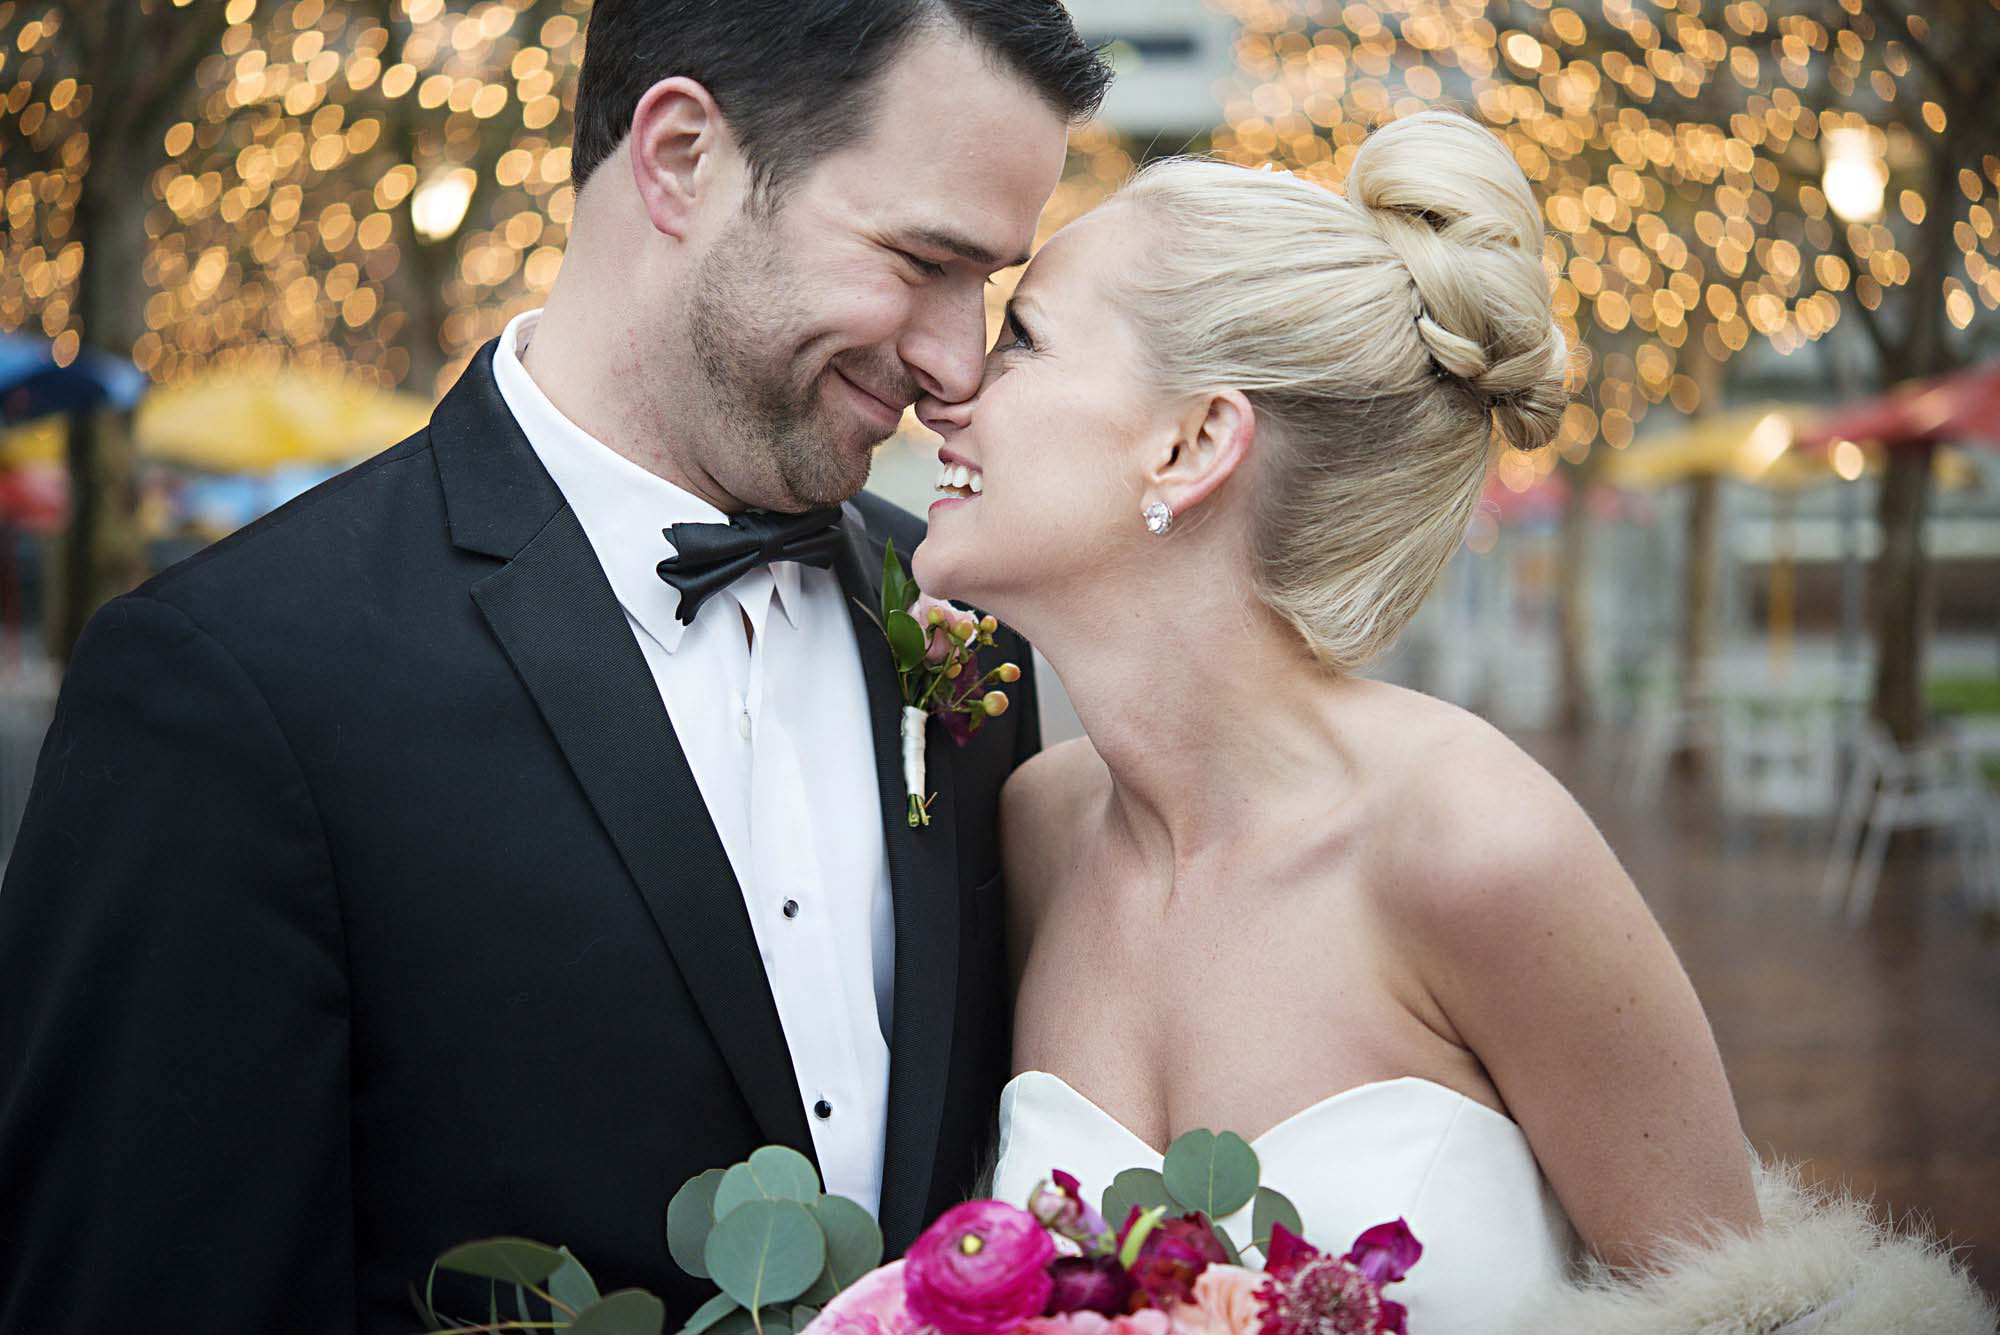 5 reasons to hire a wedding planner // KC Weddings // photo by epagaFOTO.